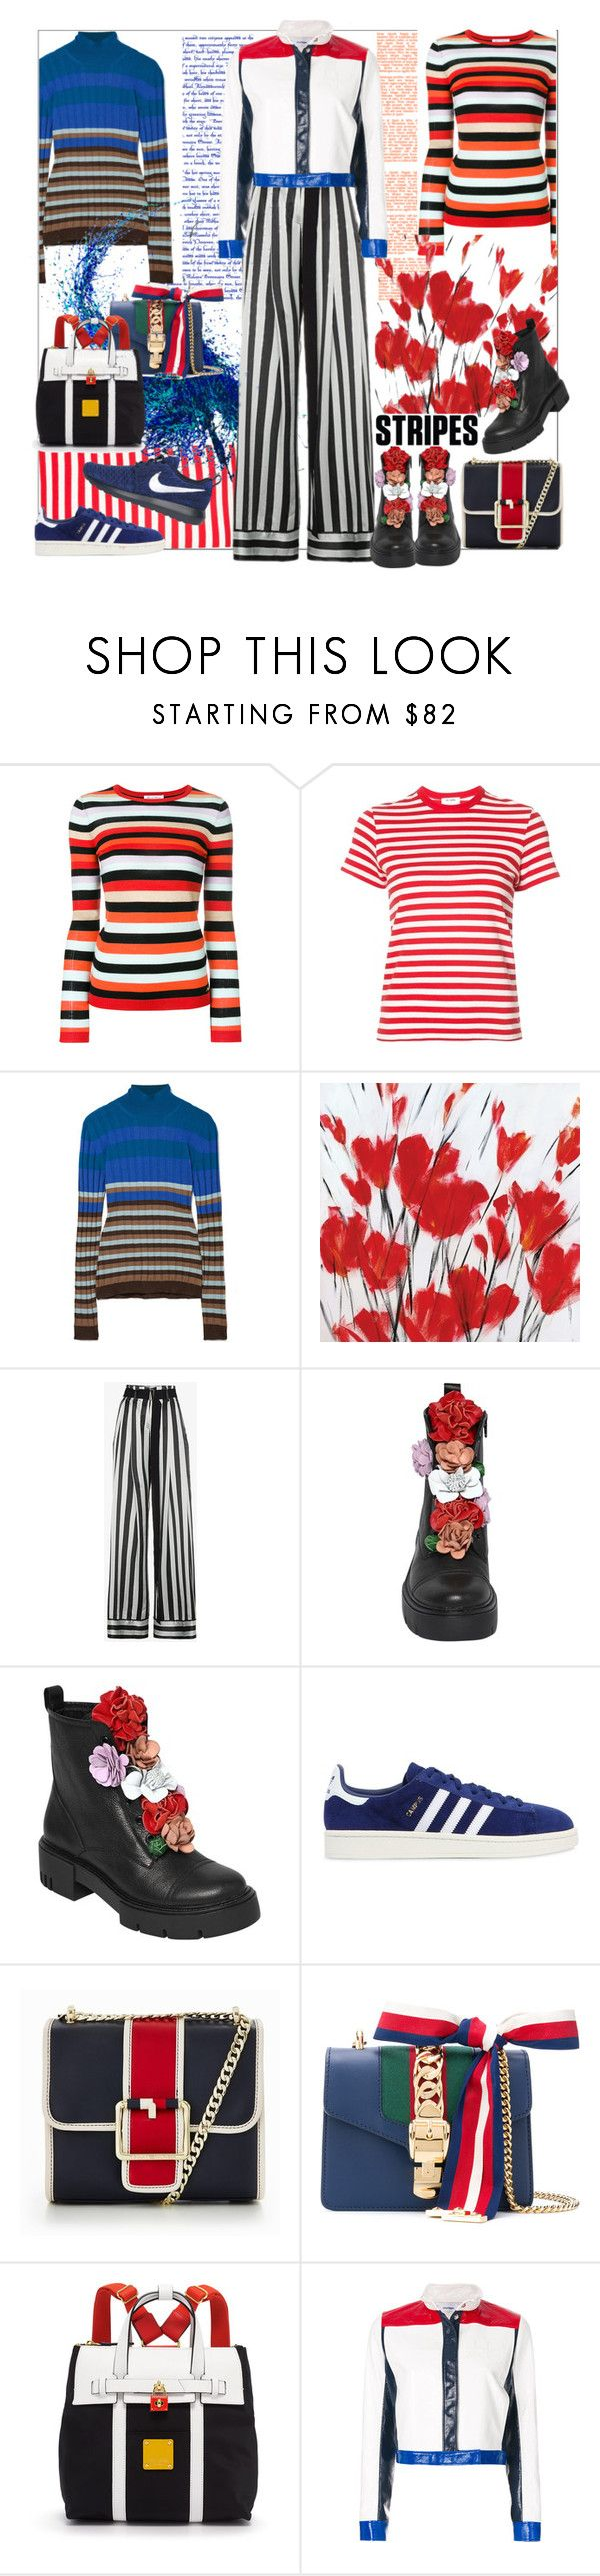 """Pattern Challenge: Stripes on Stripes"" by sylandrya ❤ liked on Polyvore featuring Bella Freud, RE/DONE, Marni, Portfolio Canvas Decor, Ann Demeulemeester, adidas Originals, Tommy Hilfiger, Gucci, Henri Bendel and Courrèges"